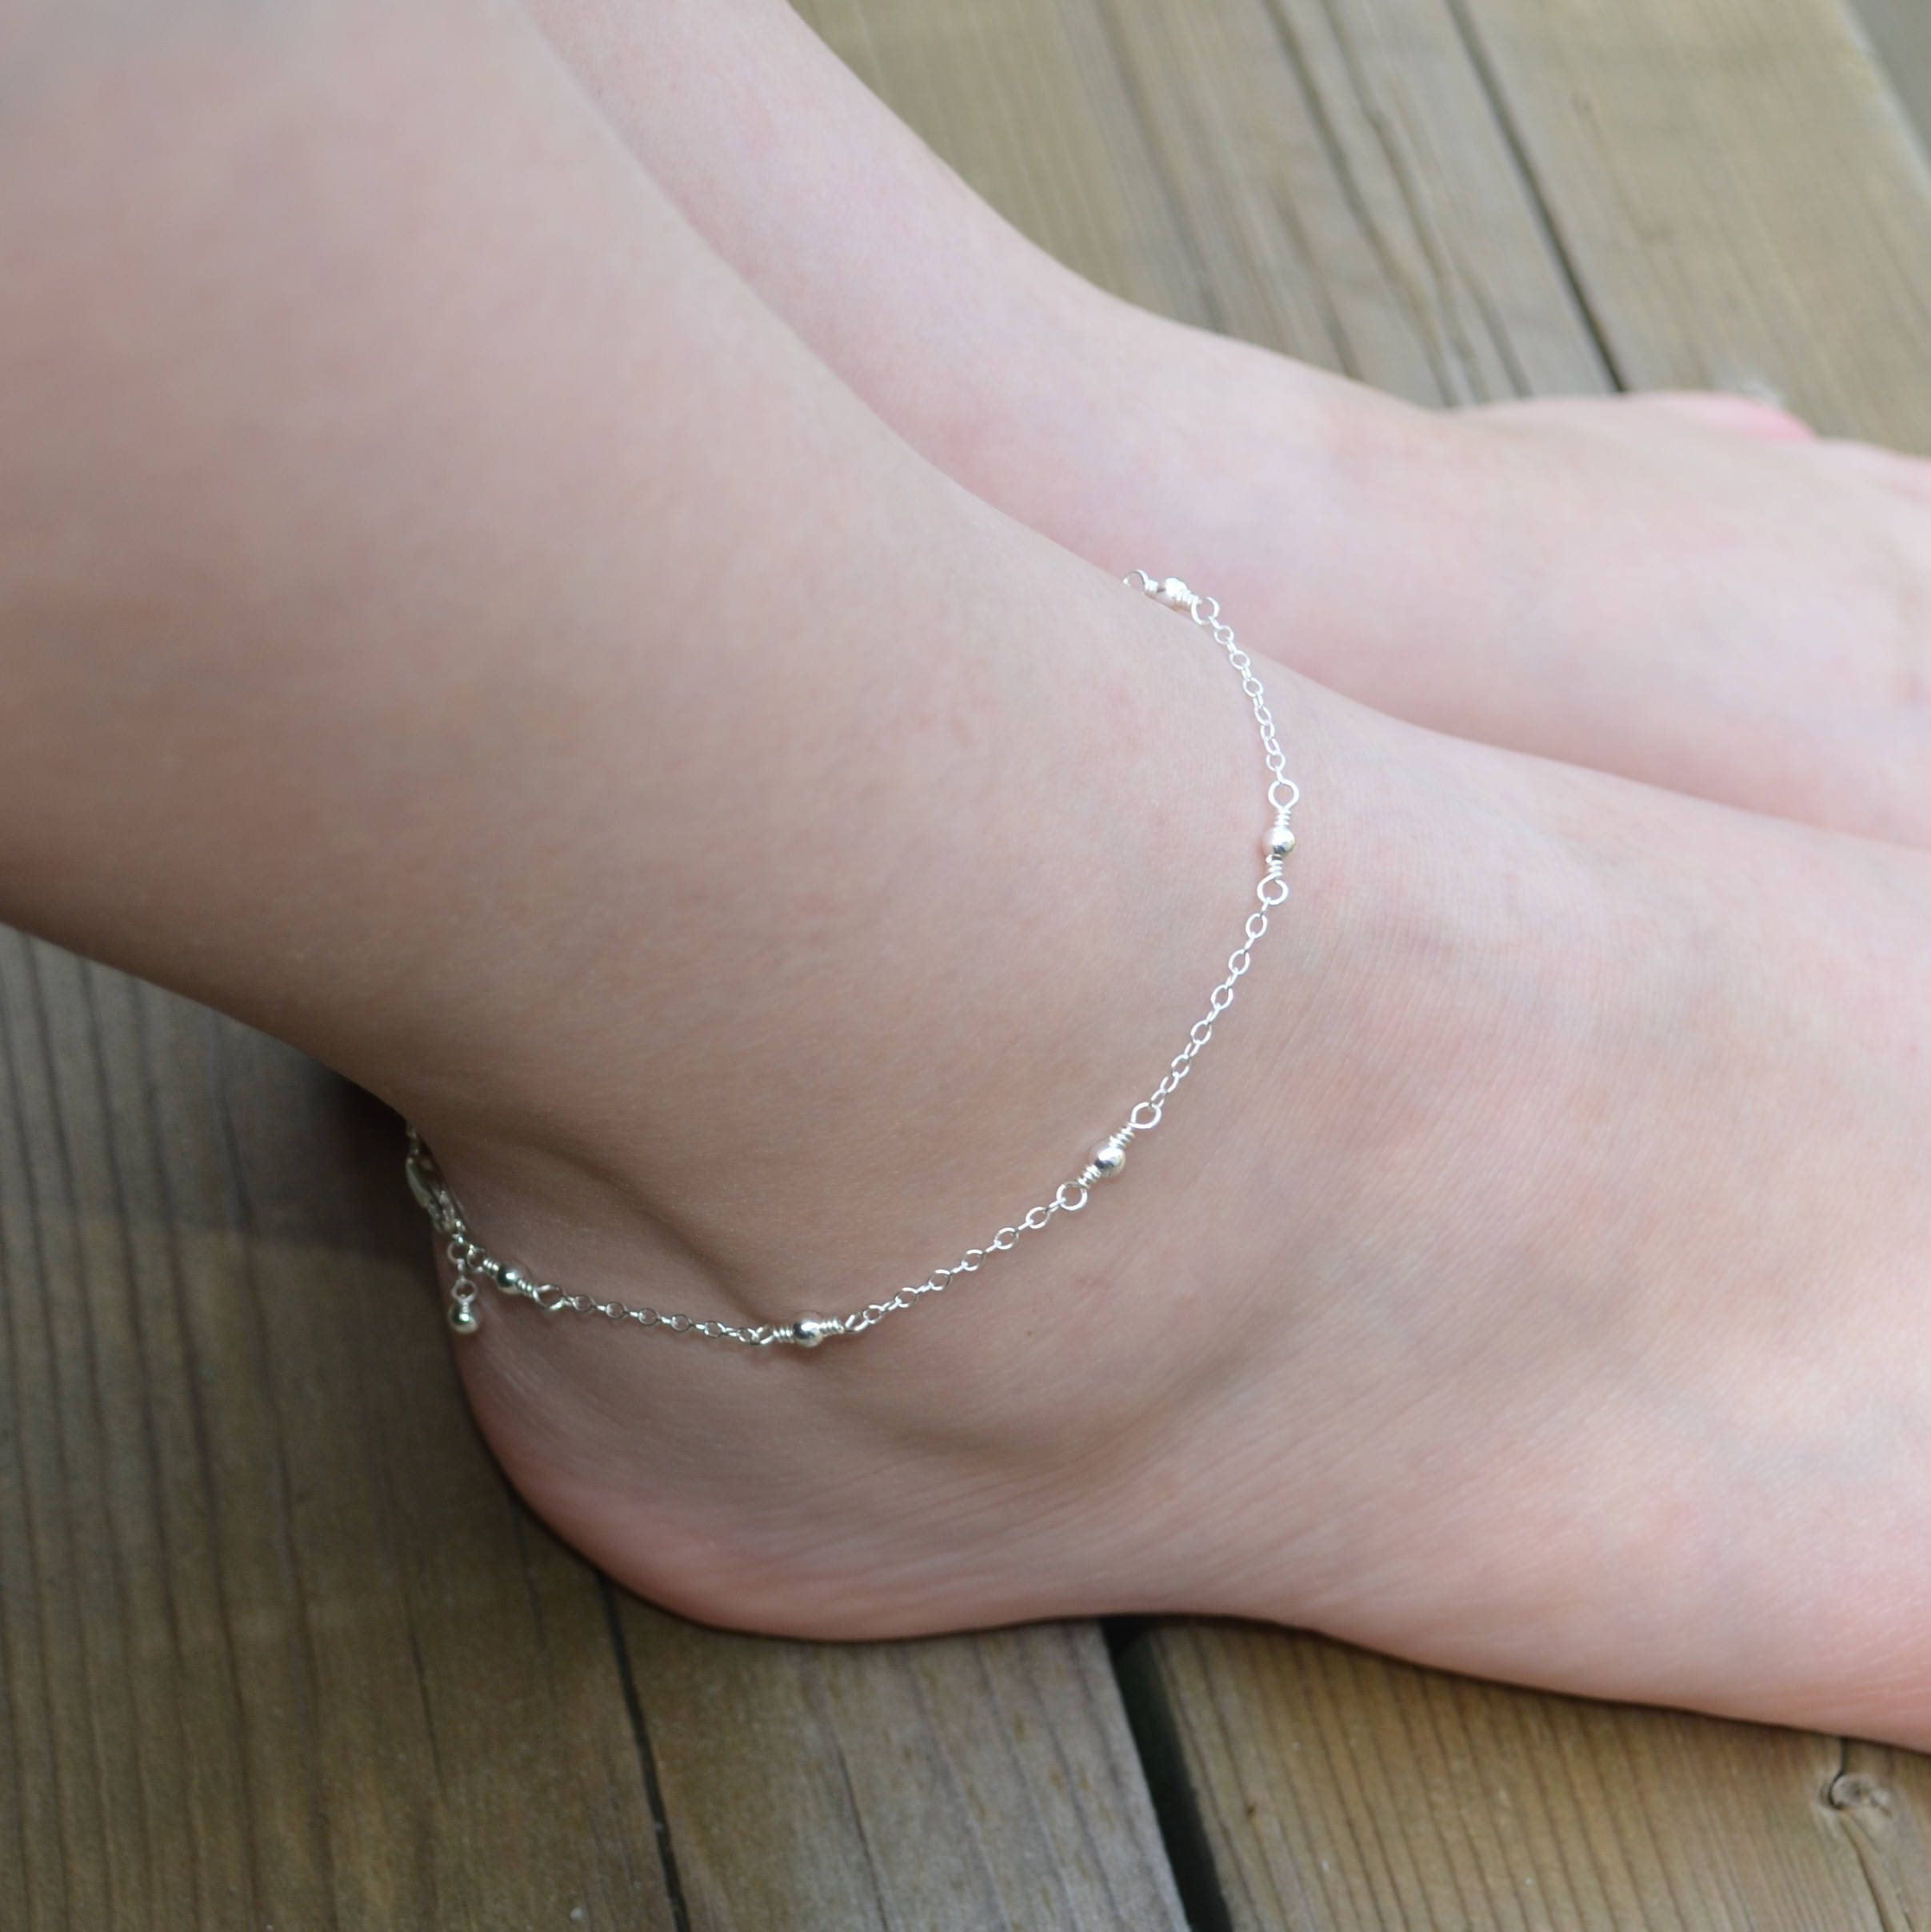 artisan leather jewelrybyyevga bracelet catalog body bracelets australian jewelry her simple product genuine wholesale yevga pearl anklet for ankle tahitian